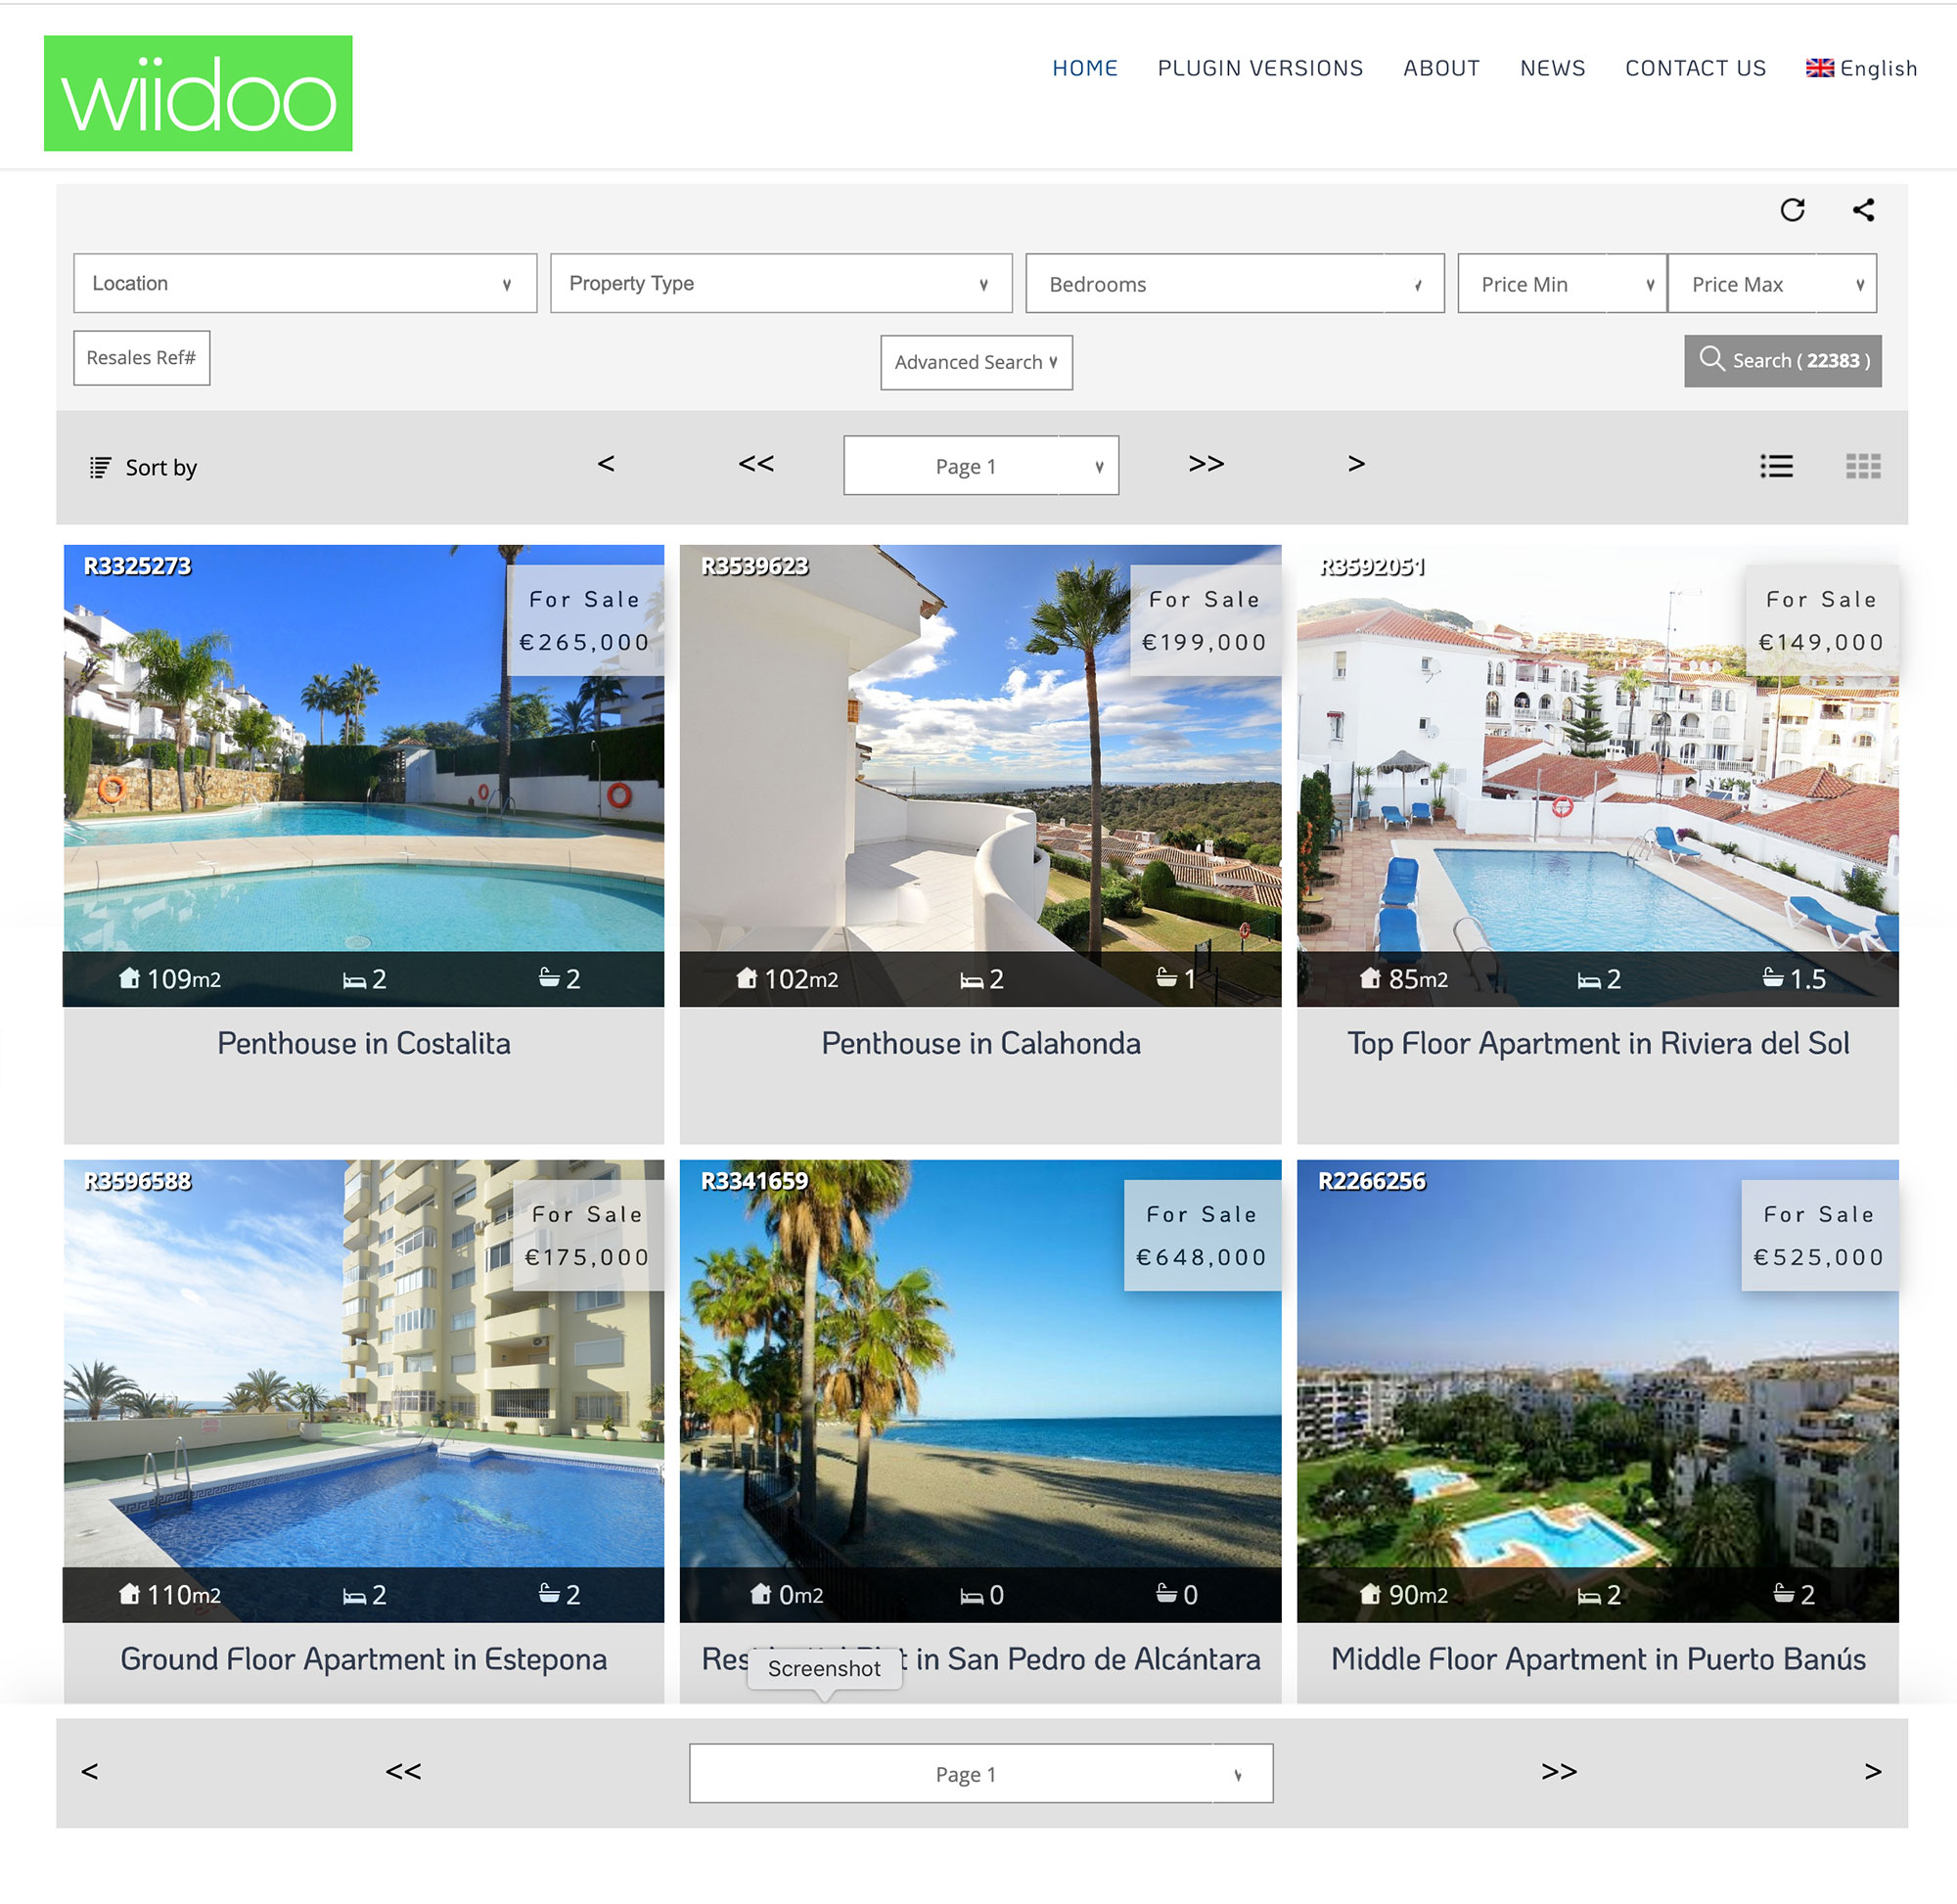 wordpress plugin for resales online costa del sol property portal wiidoo media marketing